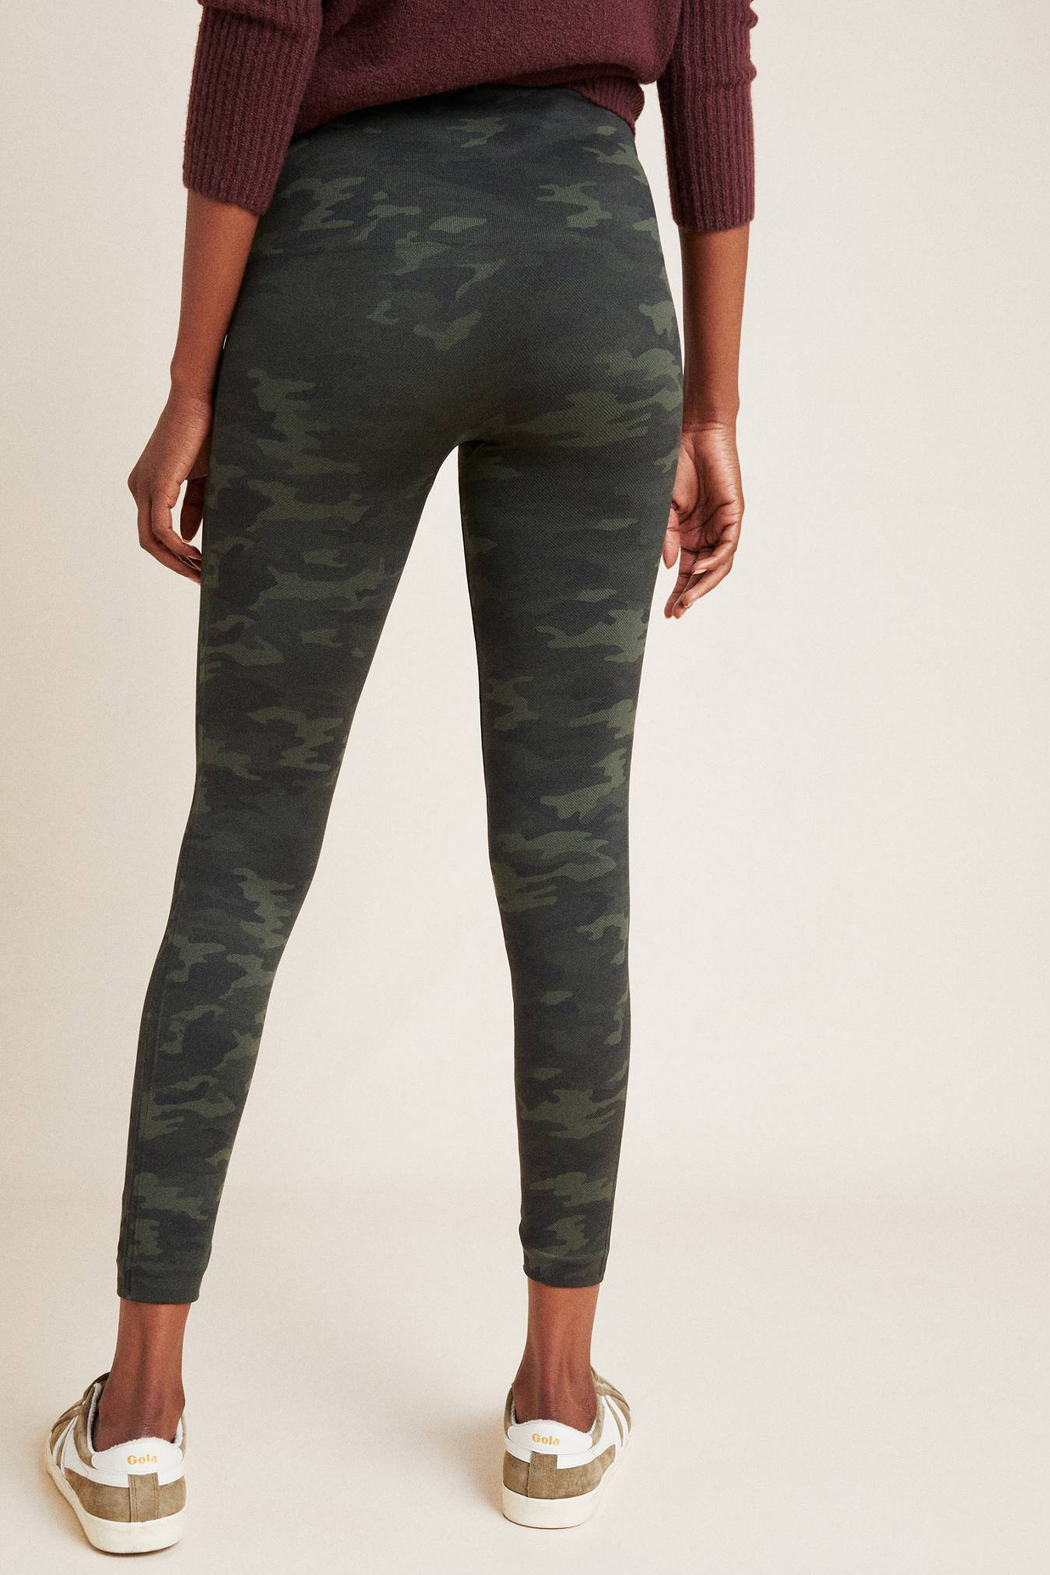 Spanx Look At Me Now Seamless Camo Leggings - Side Cropped Image